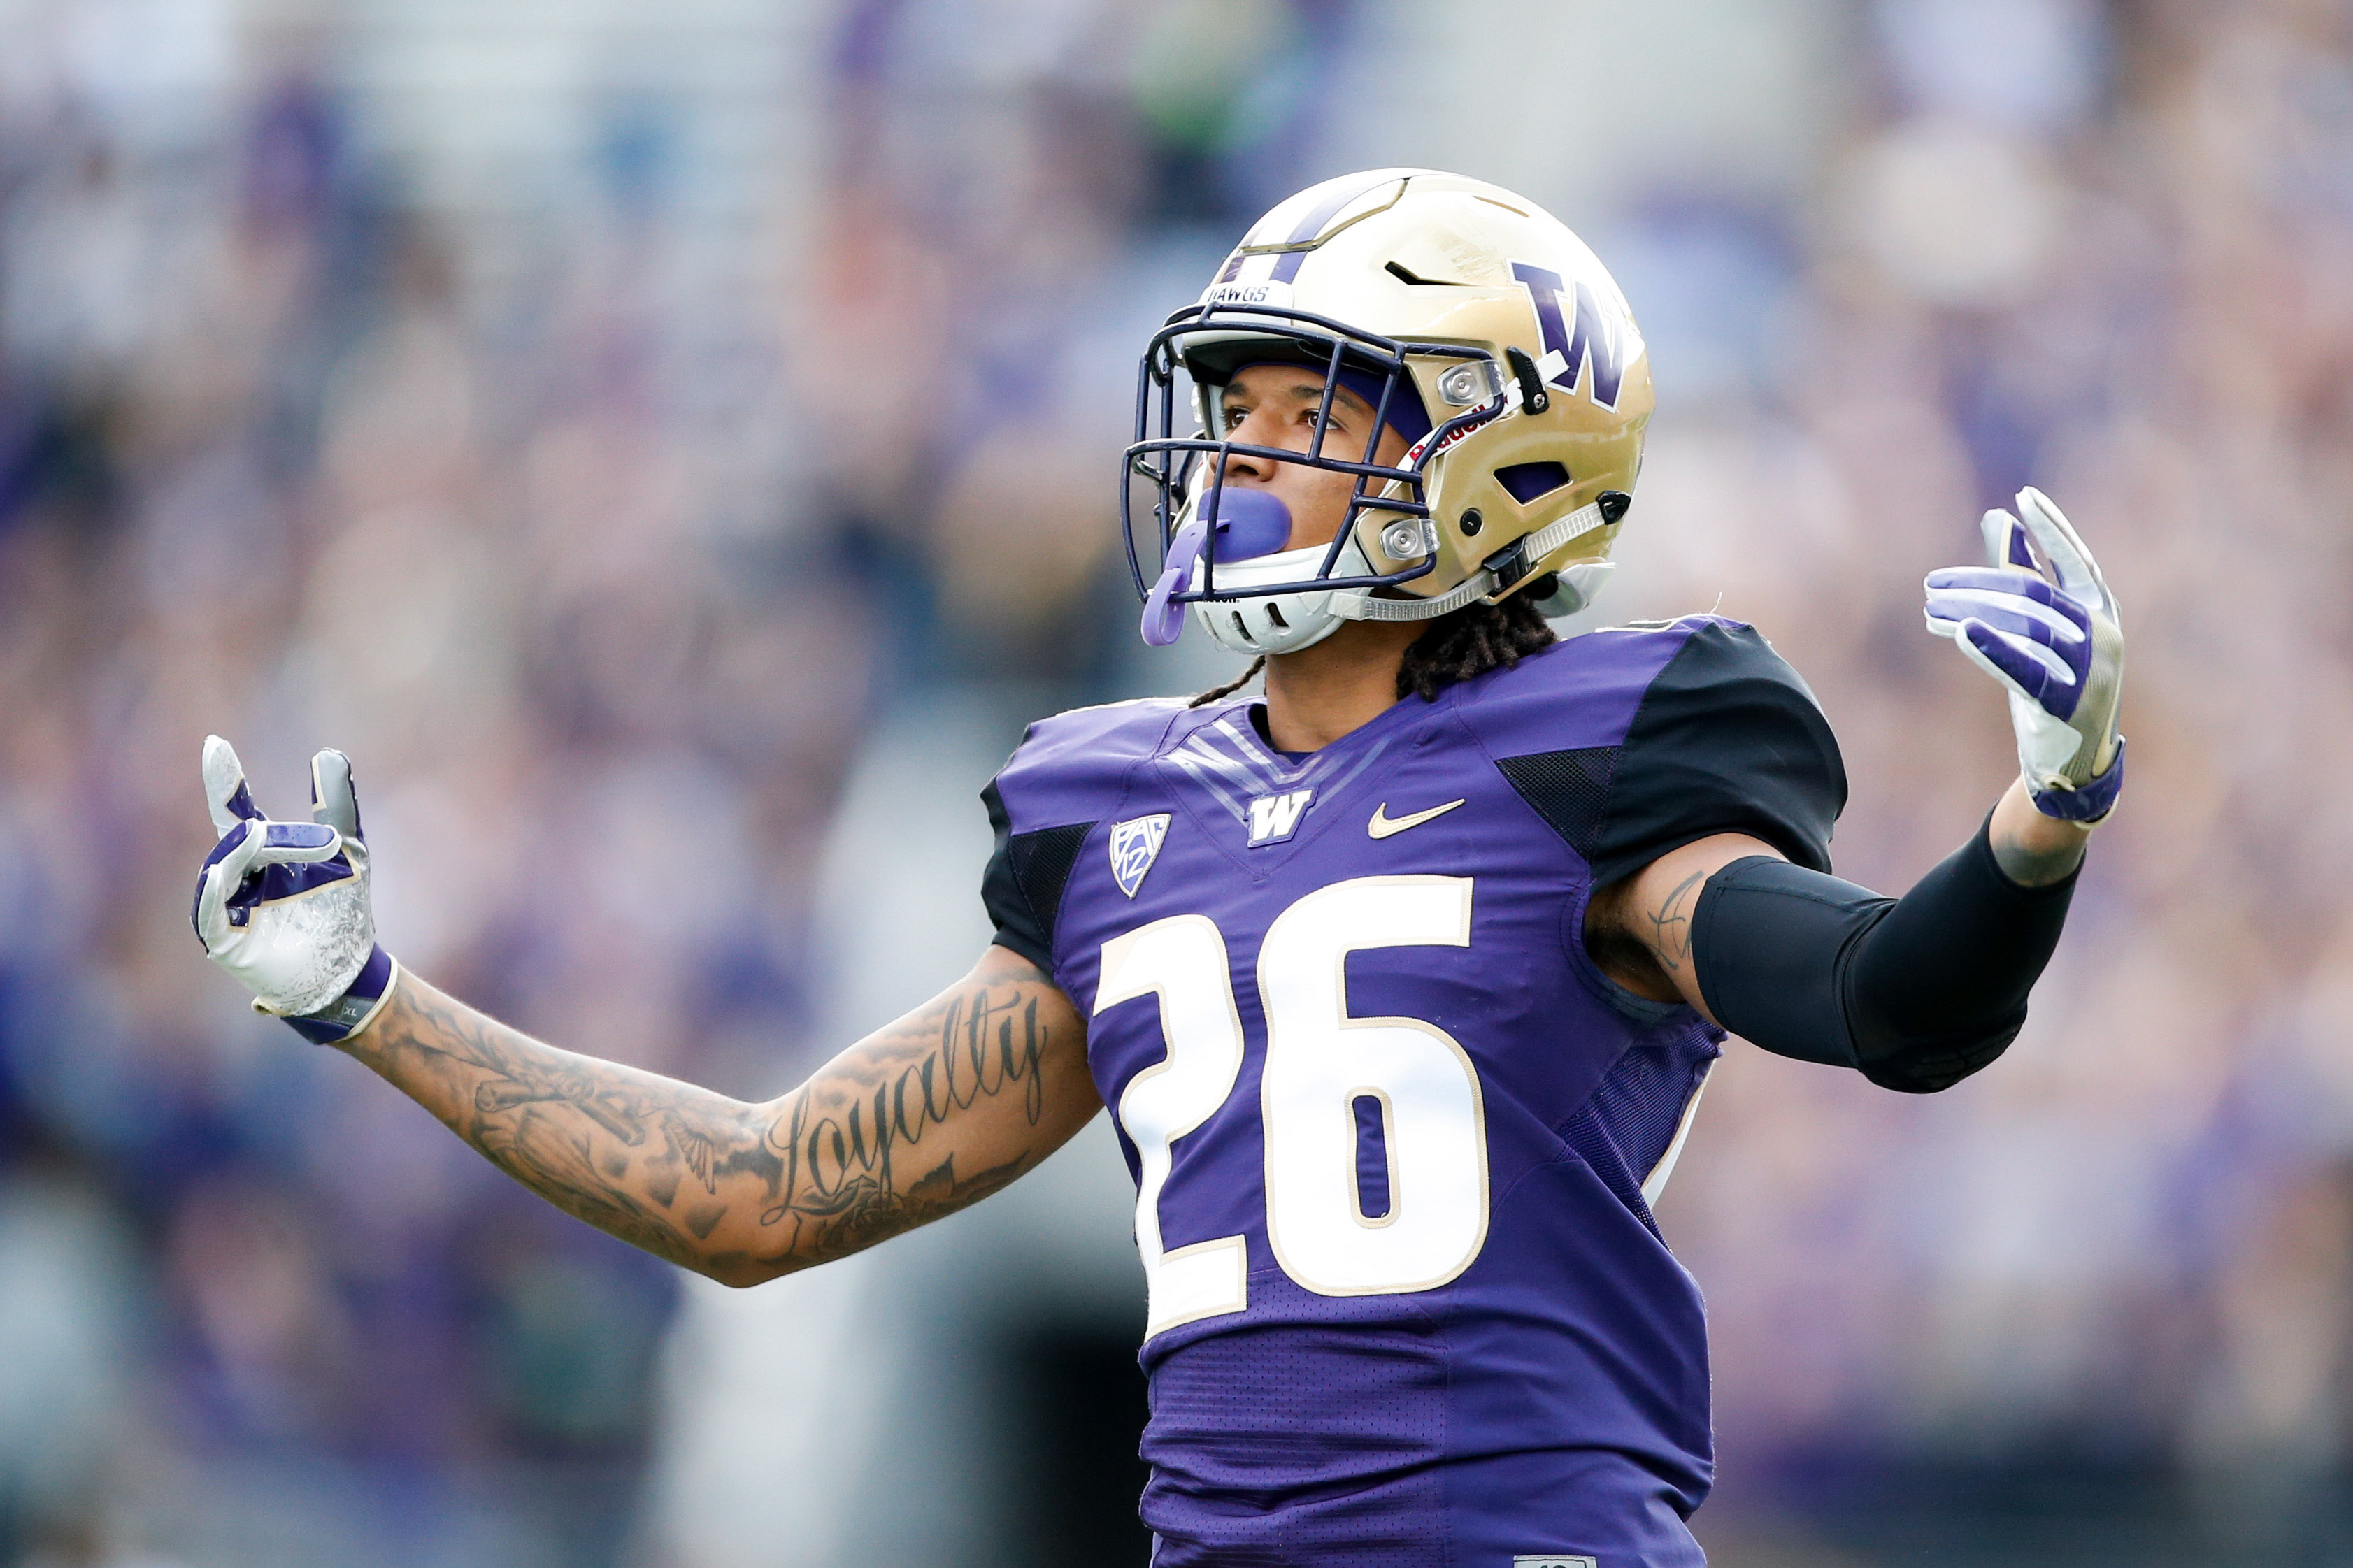 Oct 22, 2016; Seattle, WA, USA; Washington Huskies defensive back Sidney Jones (26) in action against the Oregon State Beavers during the first quarter at Husky Stadium. Washington won 41-17. Mandatory Credit: Jennifer Buchanan-USA TODAY Sports